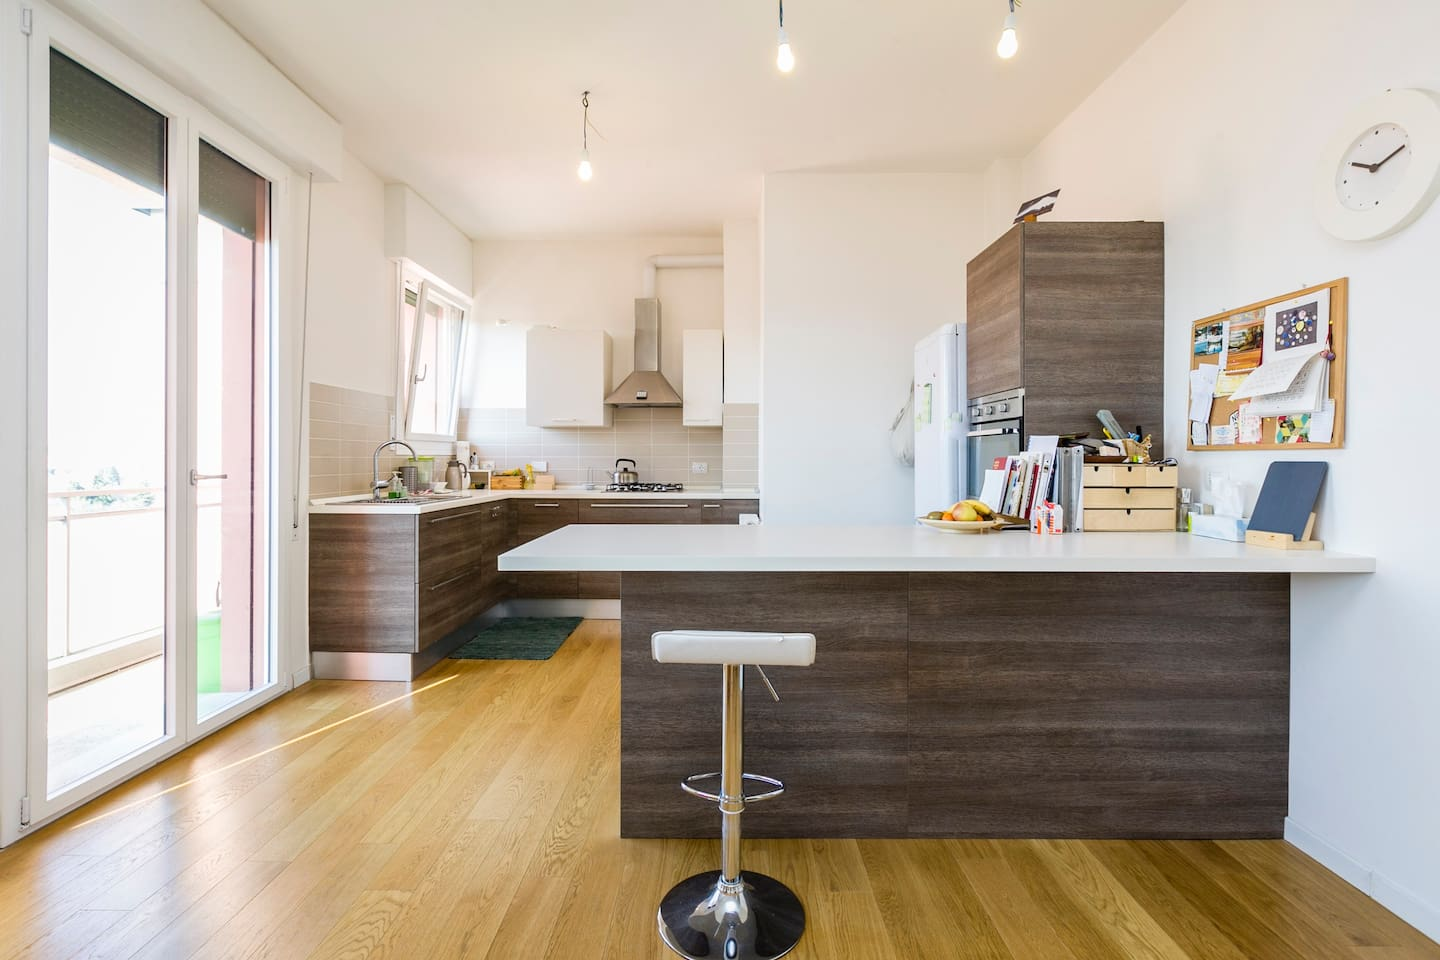 LARGE 25sqm OPEN SPACE KITCHEN/LIVING ROOM WITH BALCONY WITH VIEW